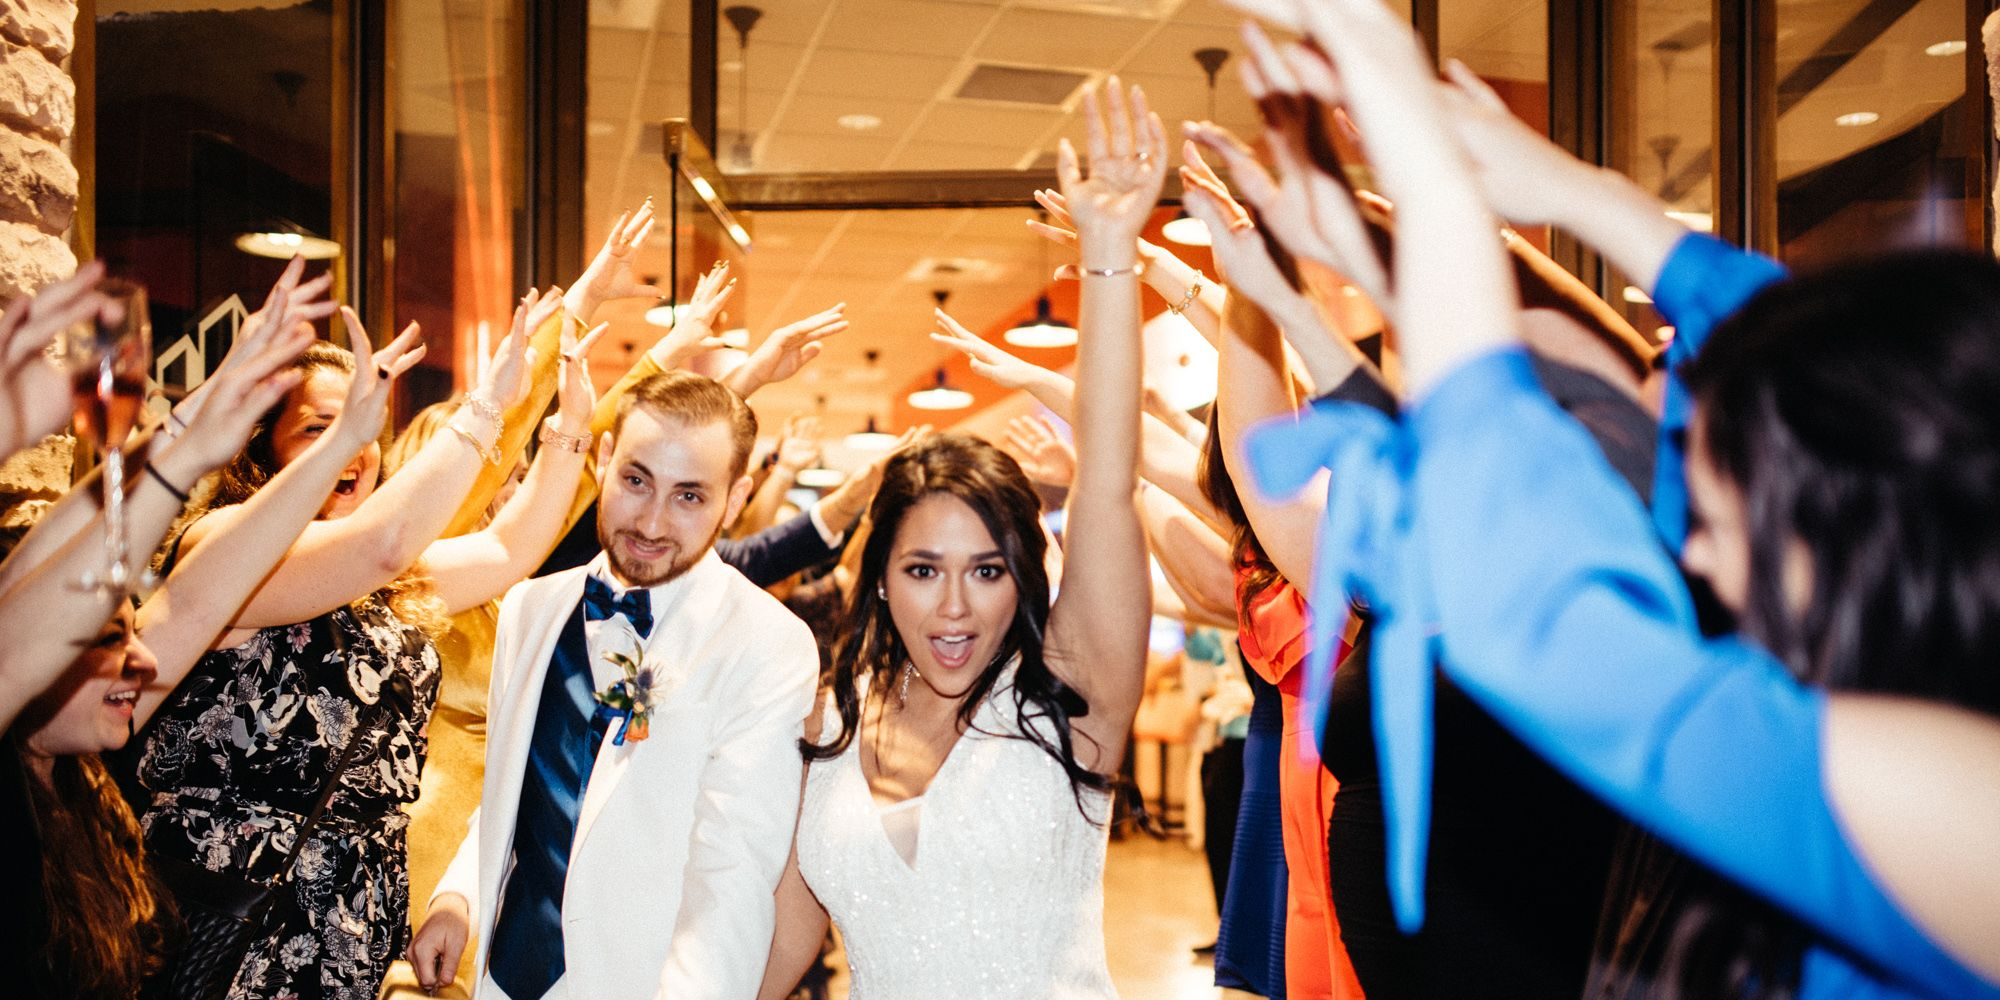 This Couple Just Got Married At White Castle, And It's Classier Than You Could Ever Imagine